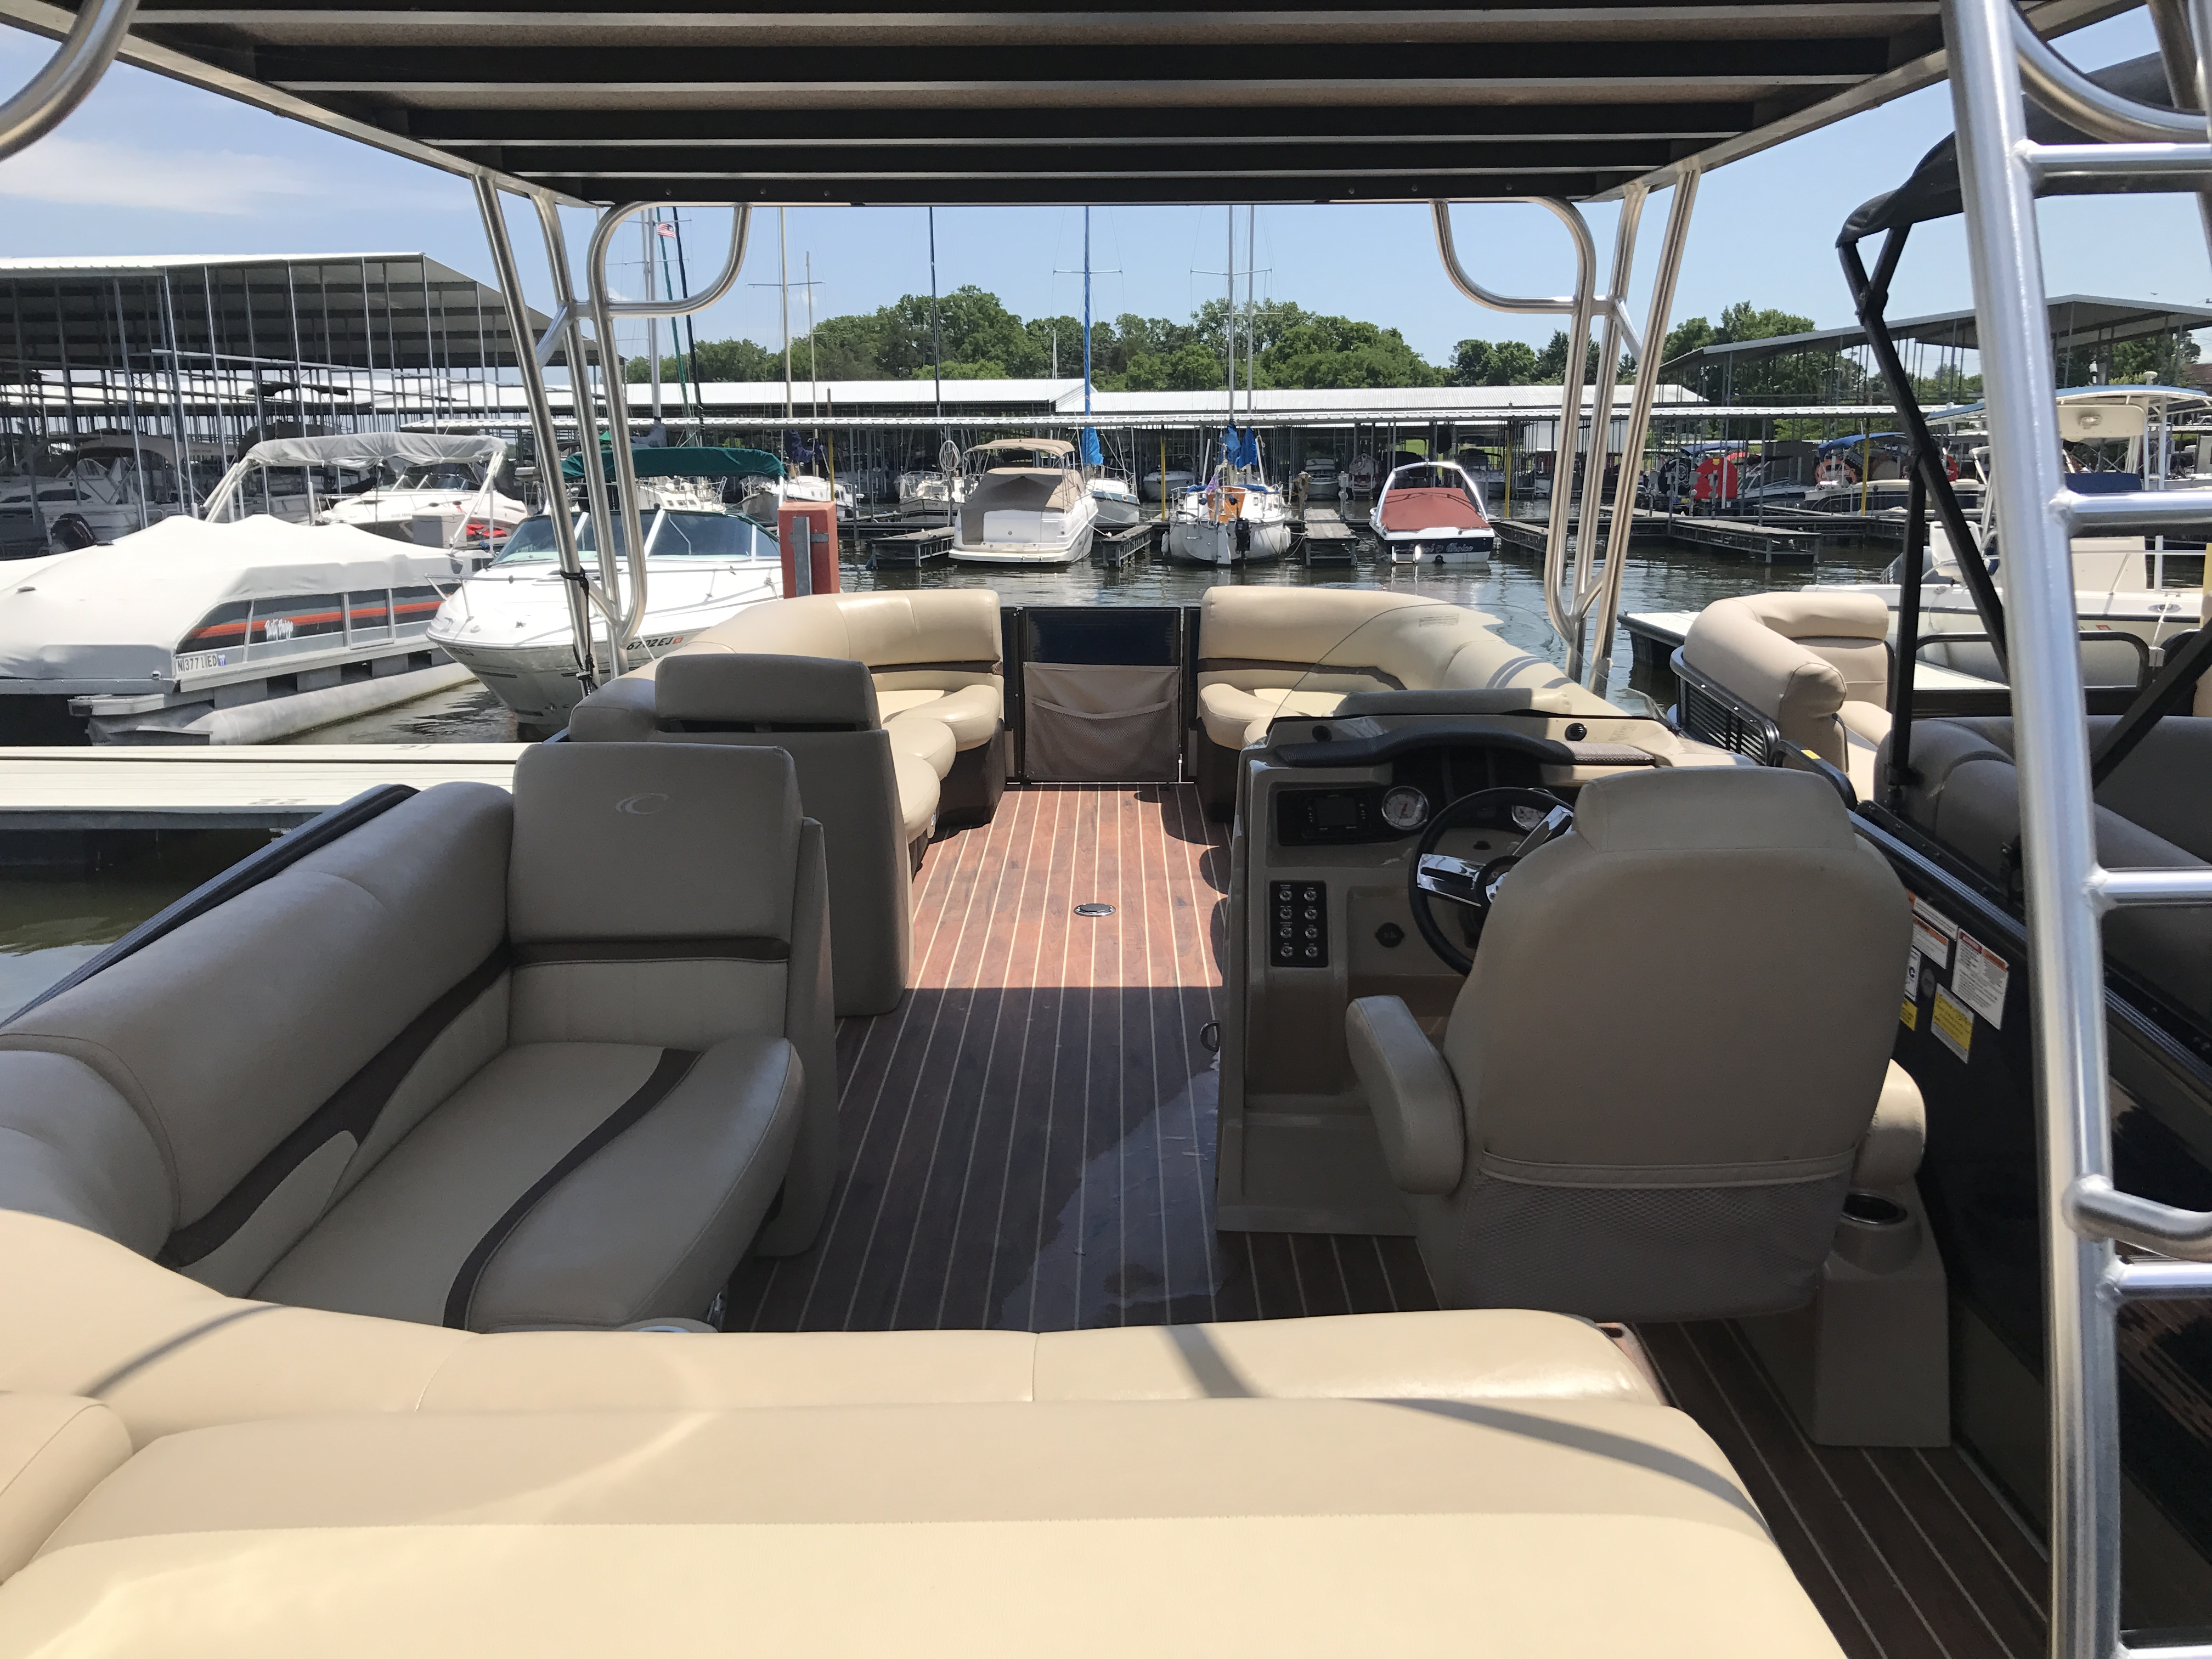 27 ft  full interior rental boat